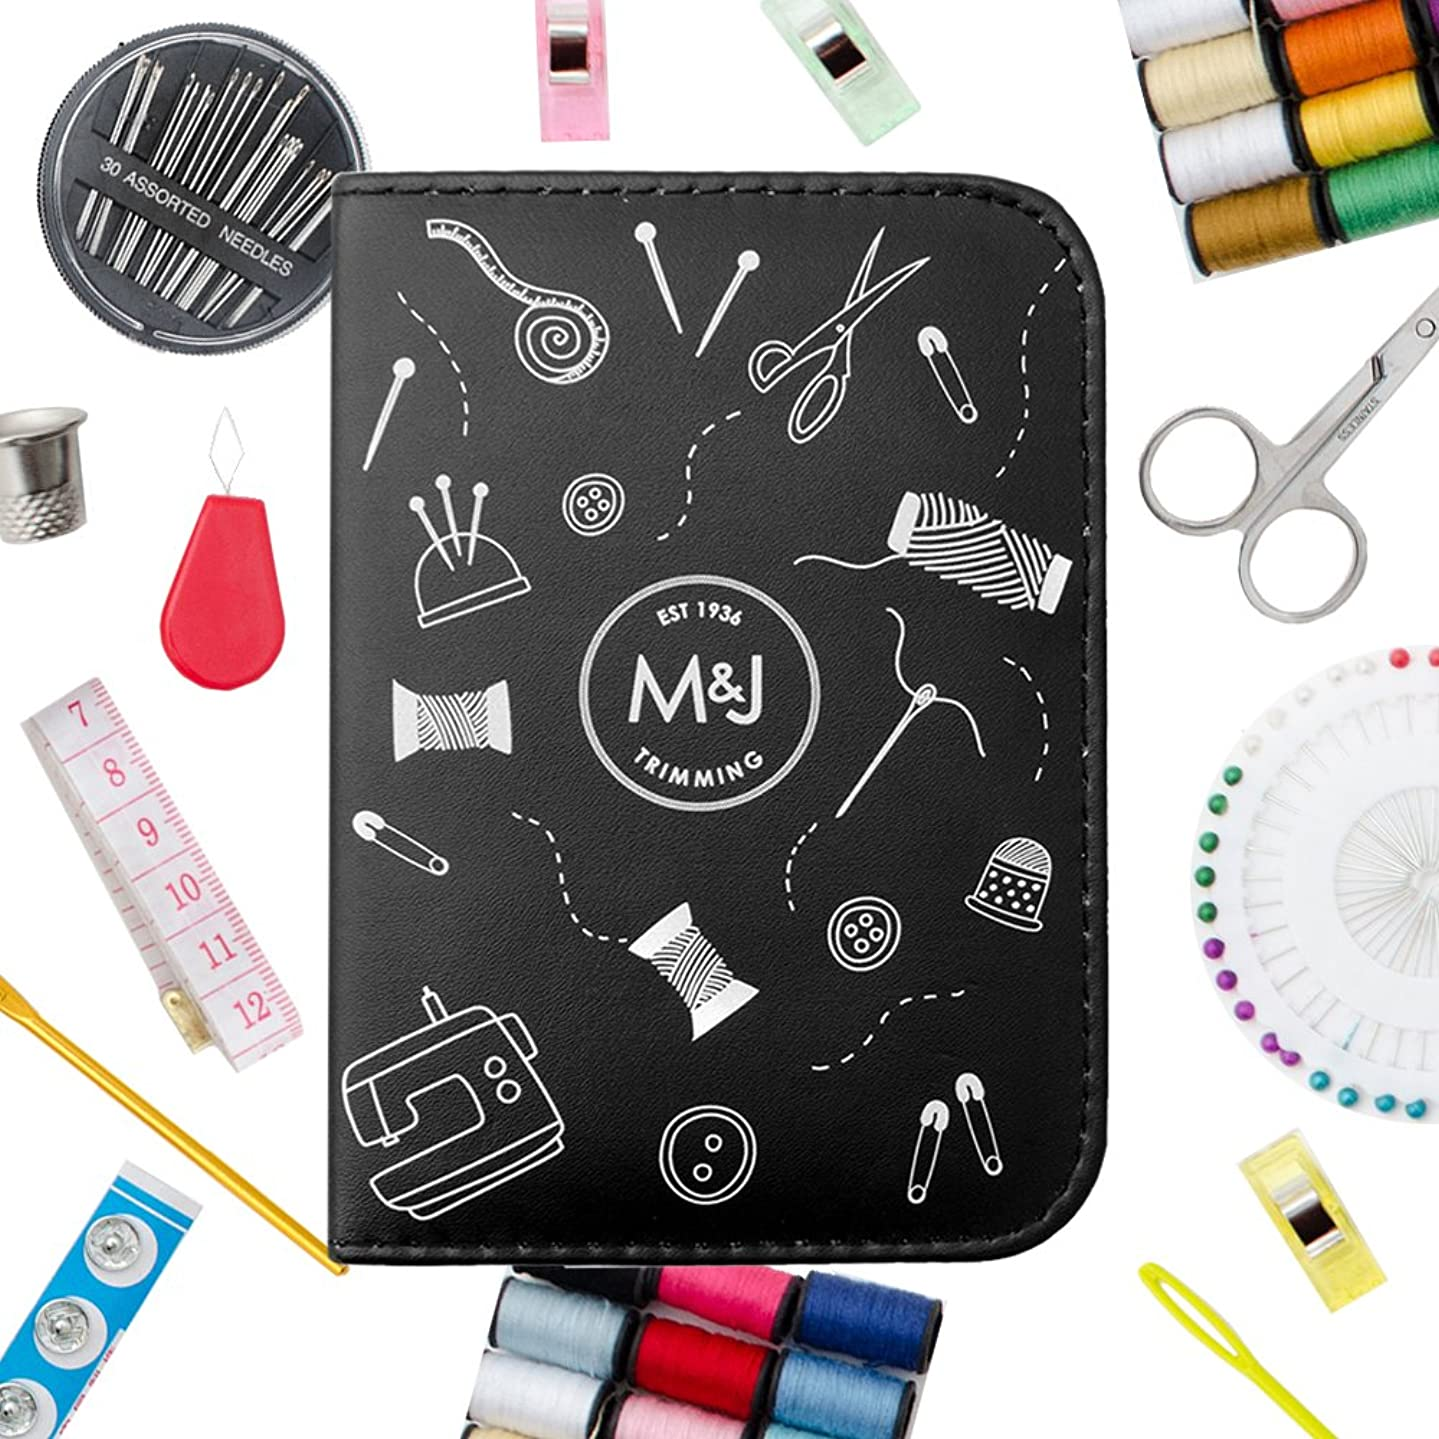 M&J Compact Sewing KIT, Lots of Premium Sewing Supplies, Mini Sewing Kits - Includes: Thread, Sewing Pins, etc. Great for Adults, Kids, Travel, Beginners, Professional, Emergency